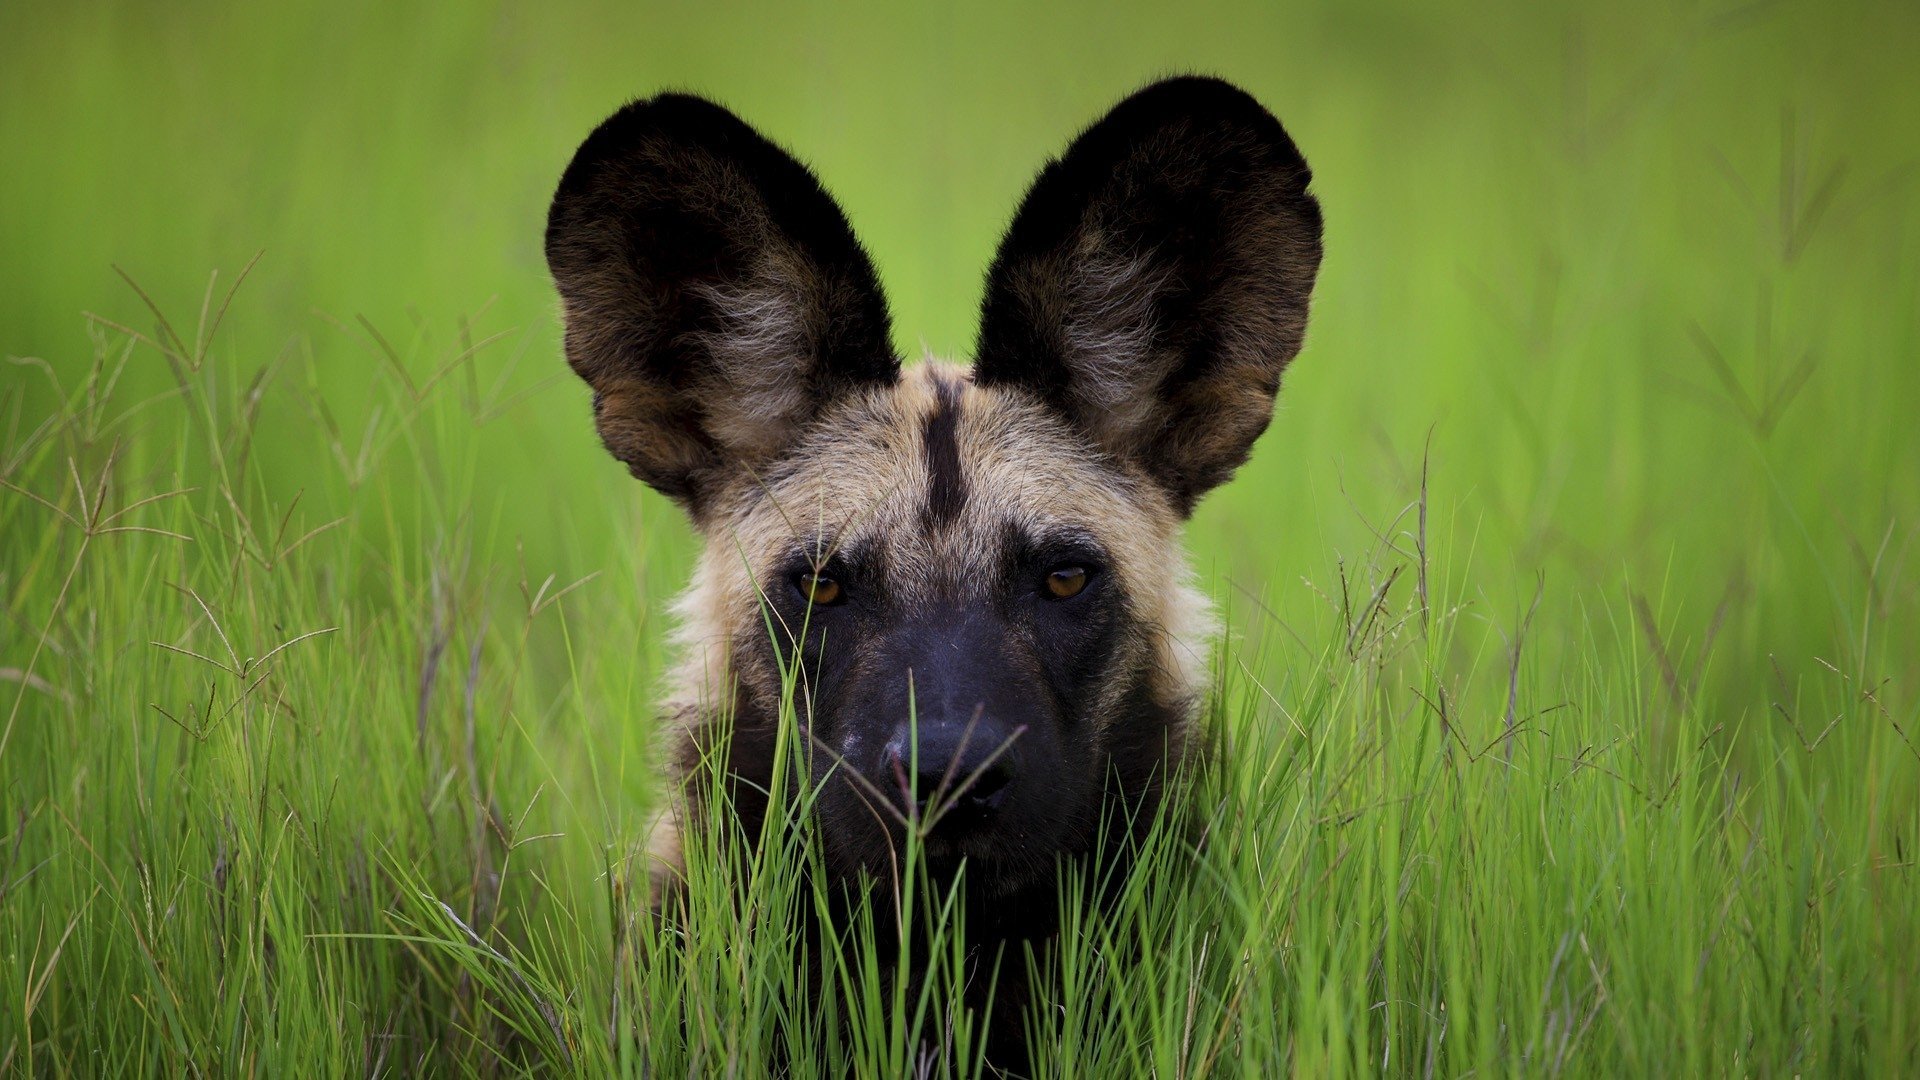 Botswana Wild Dog HD Wallpaper Background Image 1920x1080 ID 1920x1080